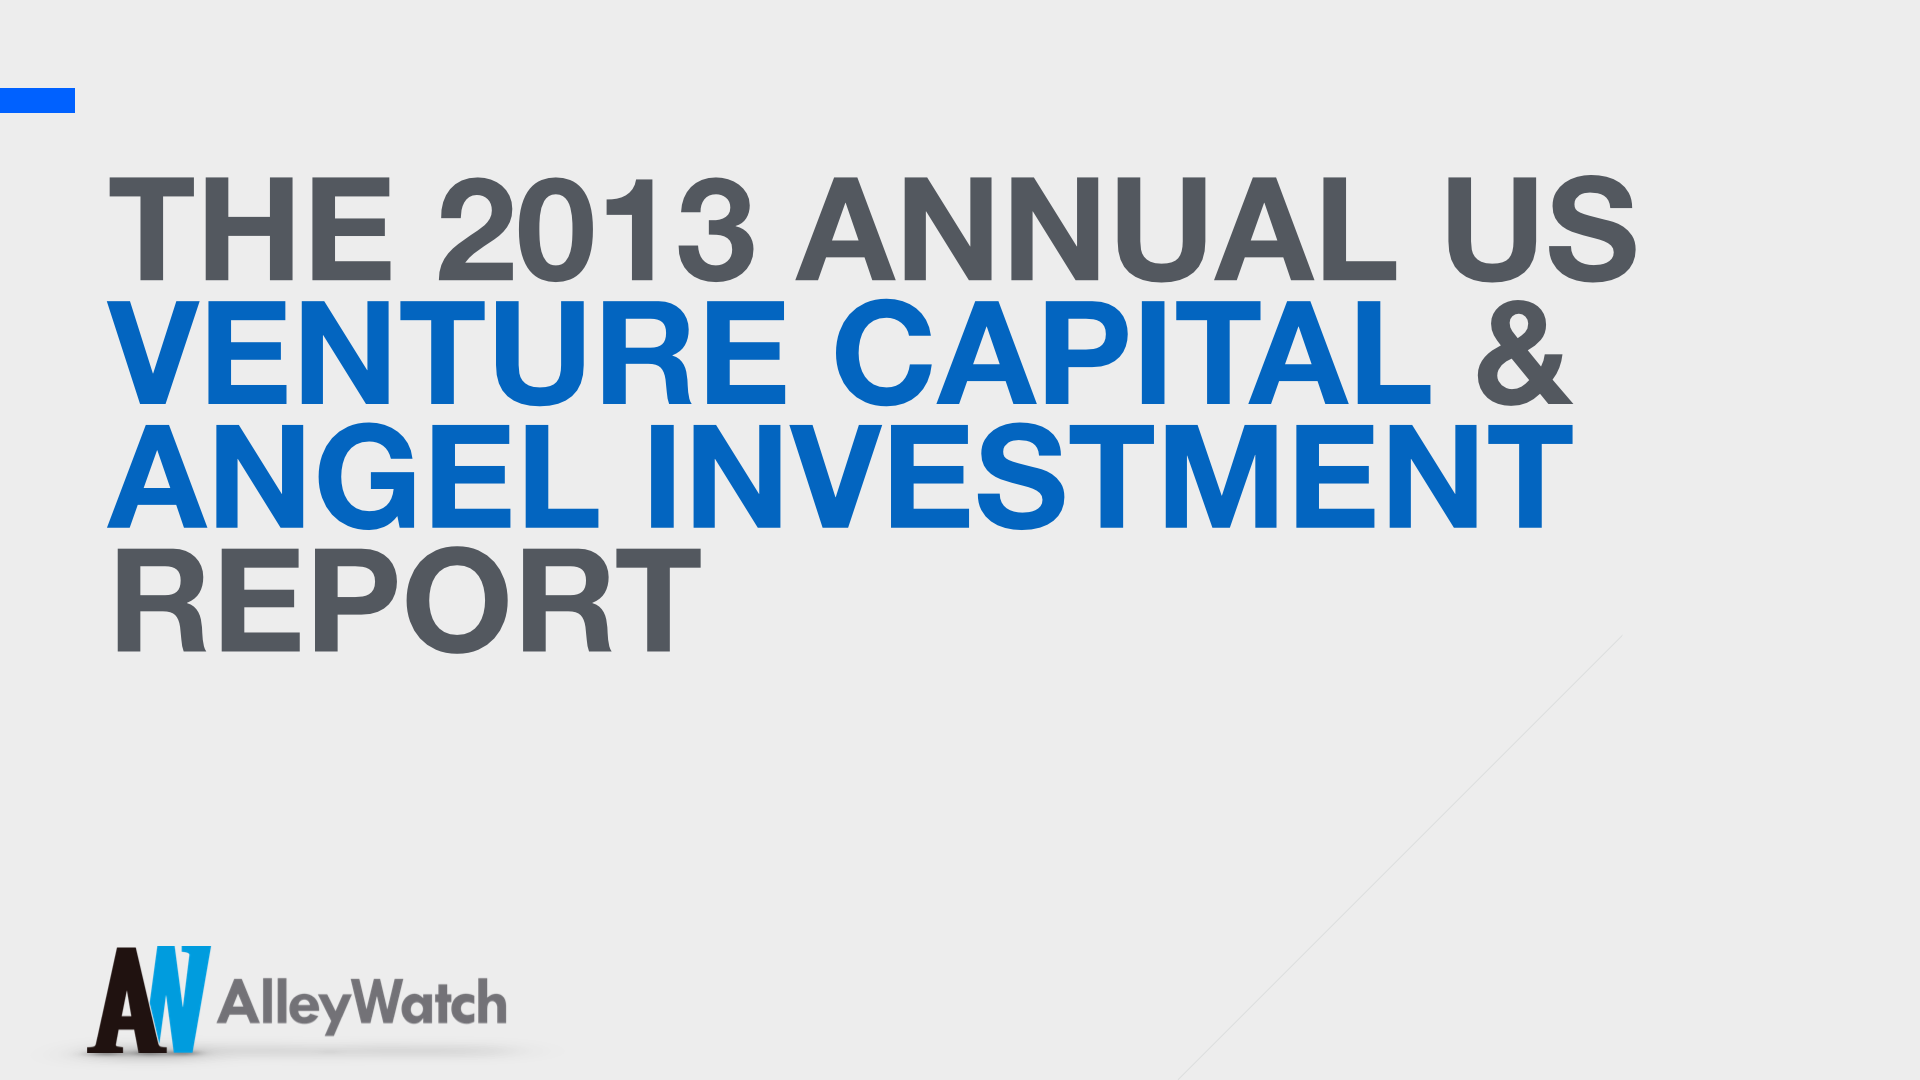 AlleyWatch Annual 2013 New York and US Venture Capital & Angel Investment Report copy.001